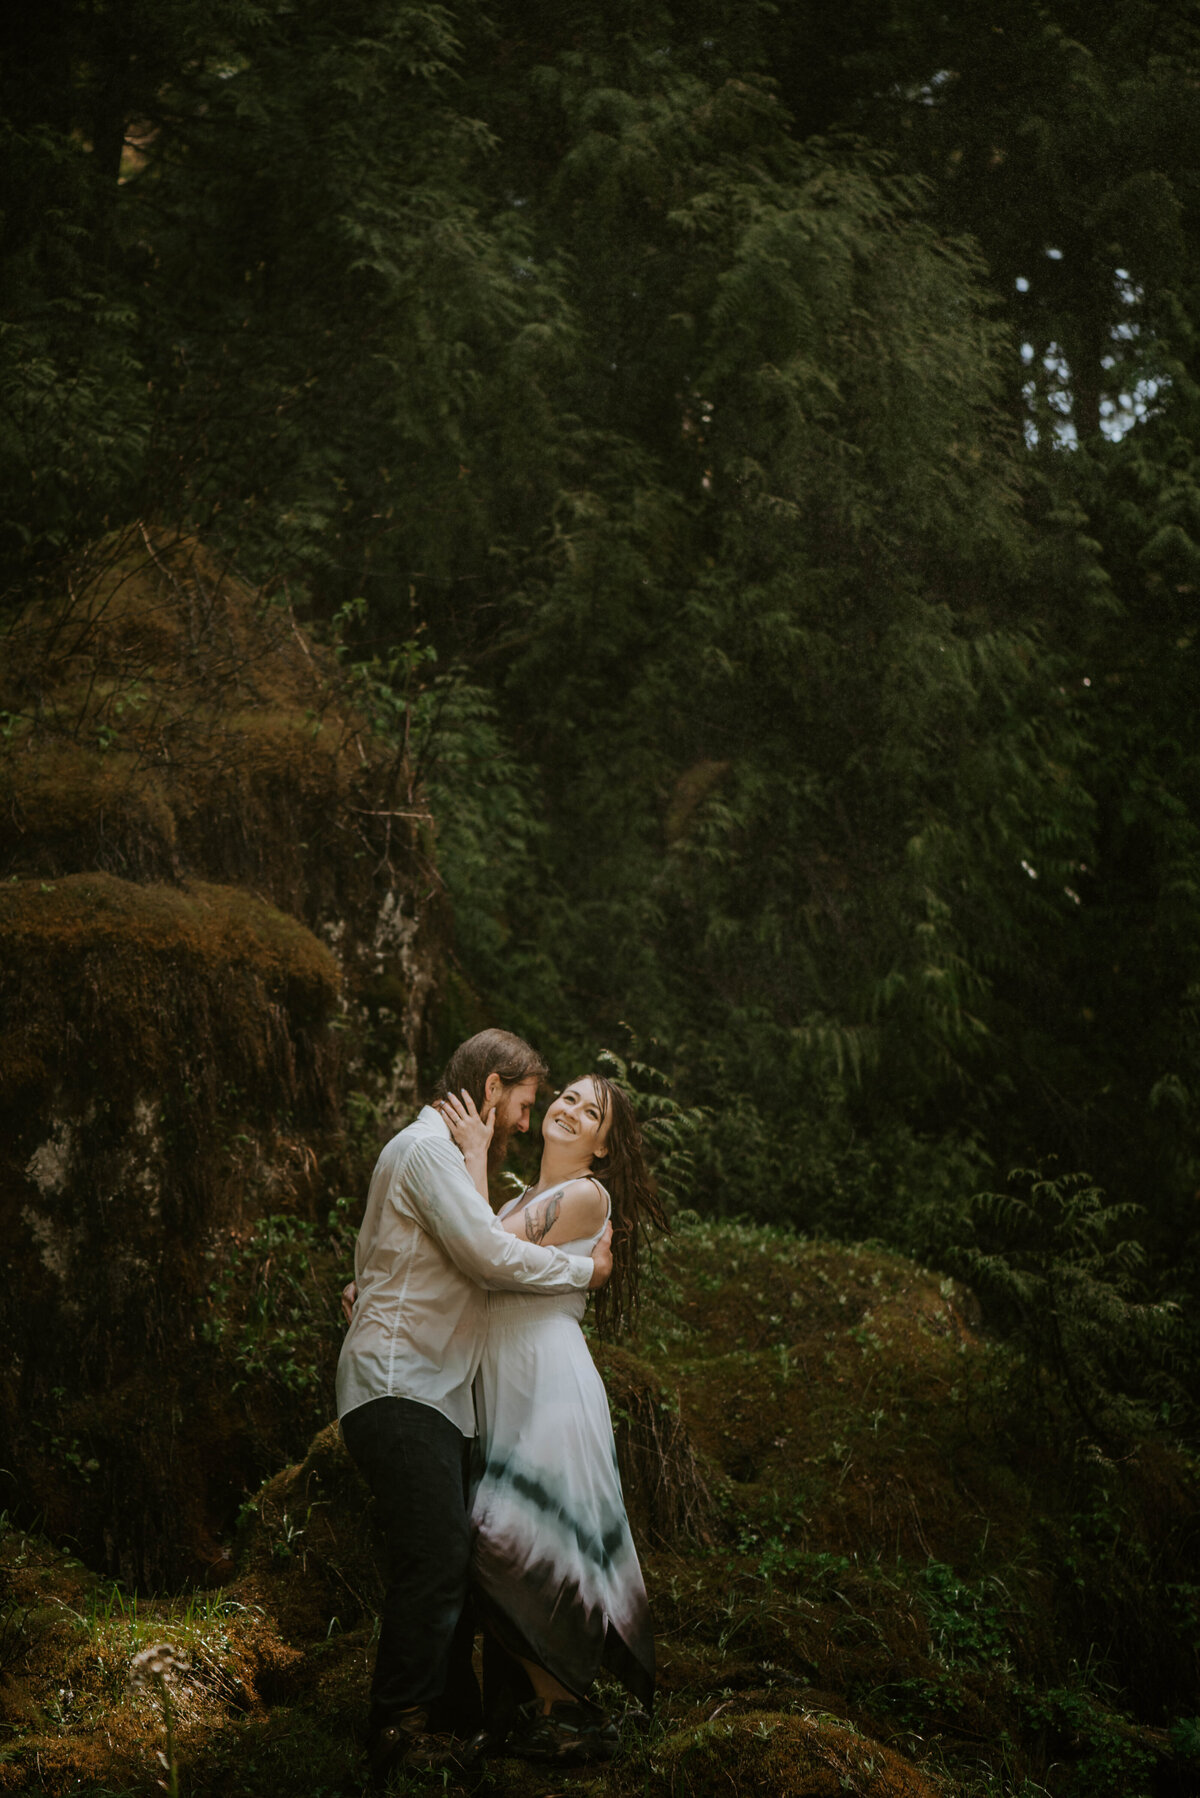 sahalie-falls-summer-oregon-photoshoot-adventure-photographer-bend-couple-forest-outfits-elopement-wedding8505